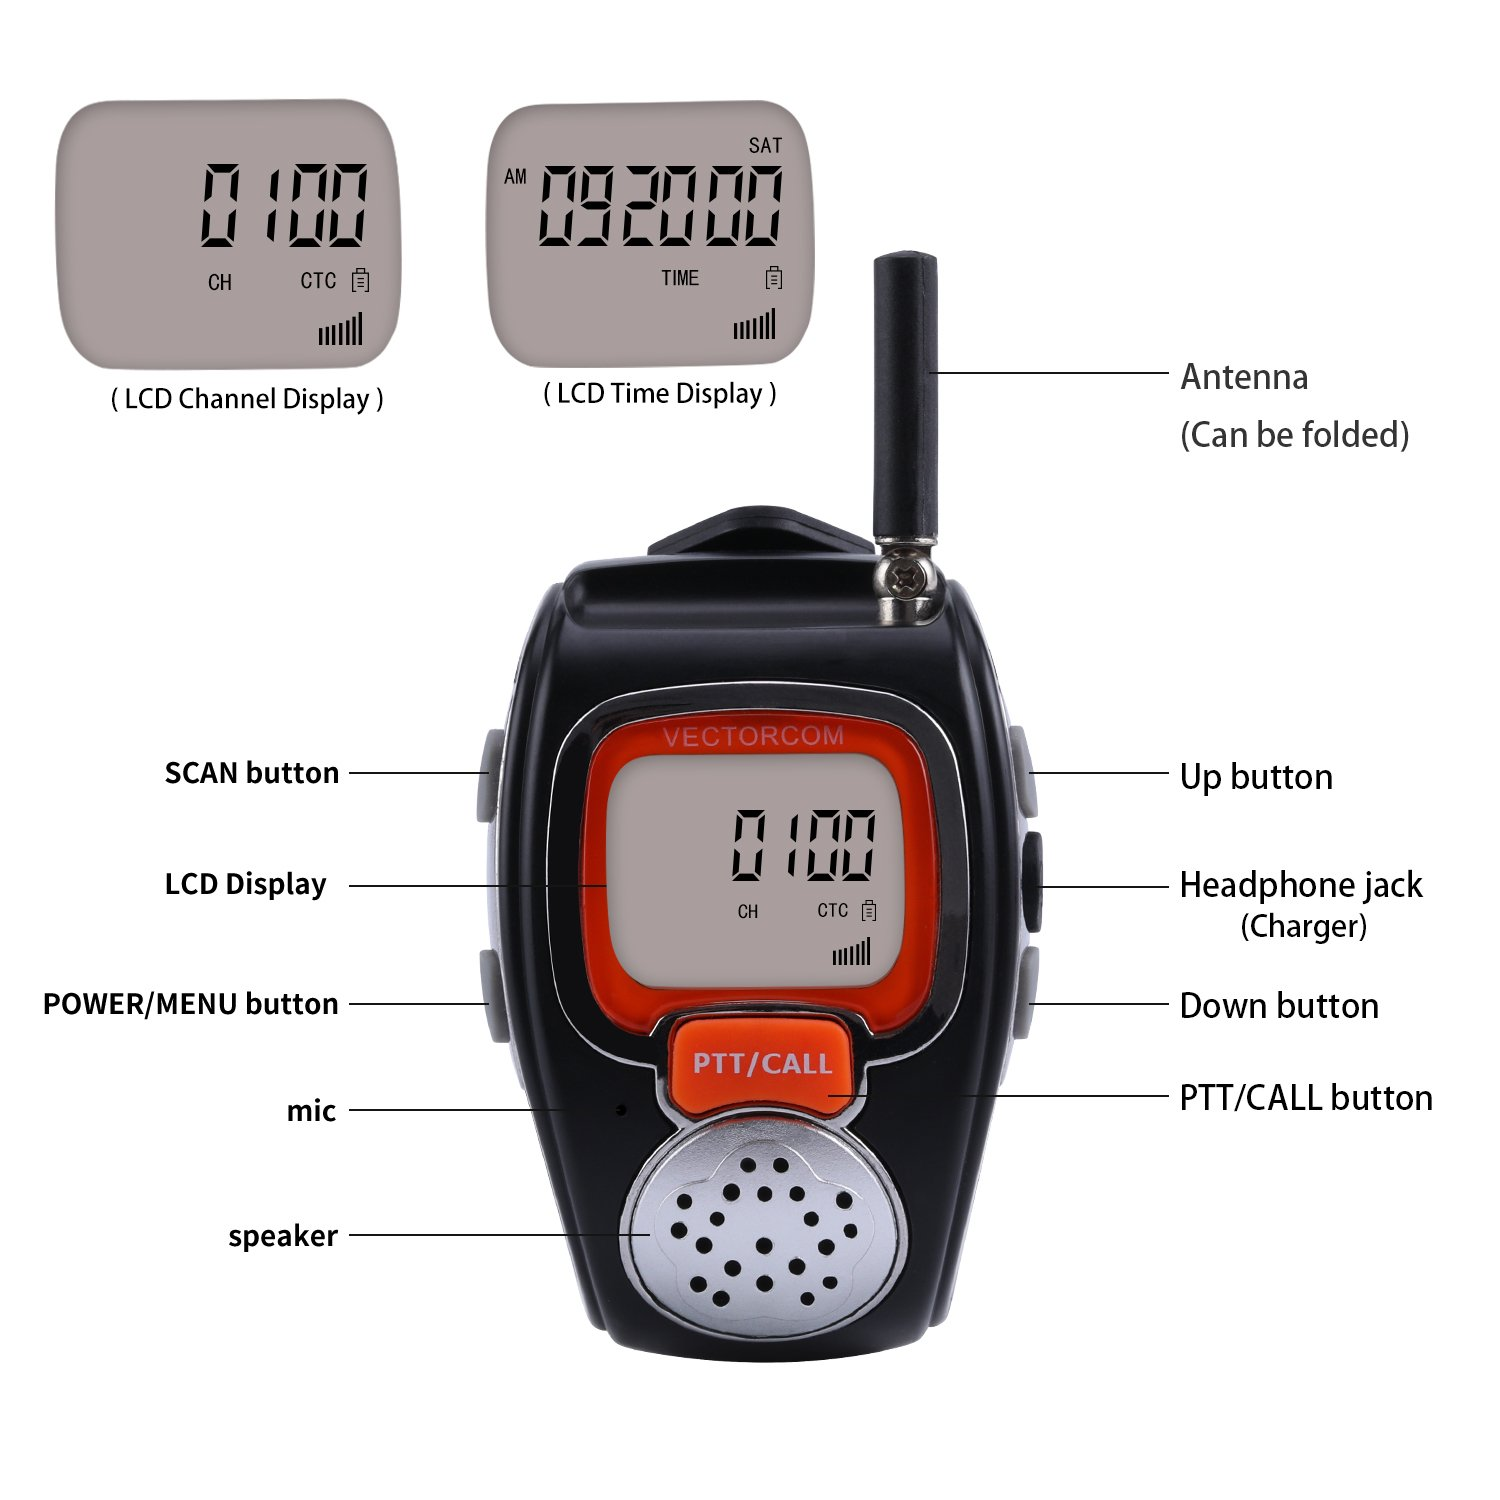 Amazon.com: Portable Digital Wrist Watch Walkie Talkie Two-Way Radio for  Outdoor Sport Hiking, 462MHZ, black, 2pcs: Cell Phones & Accessories